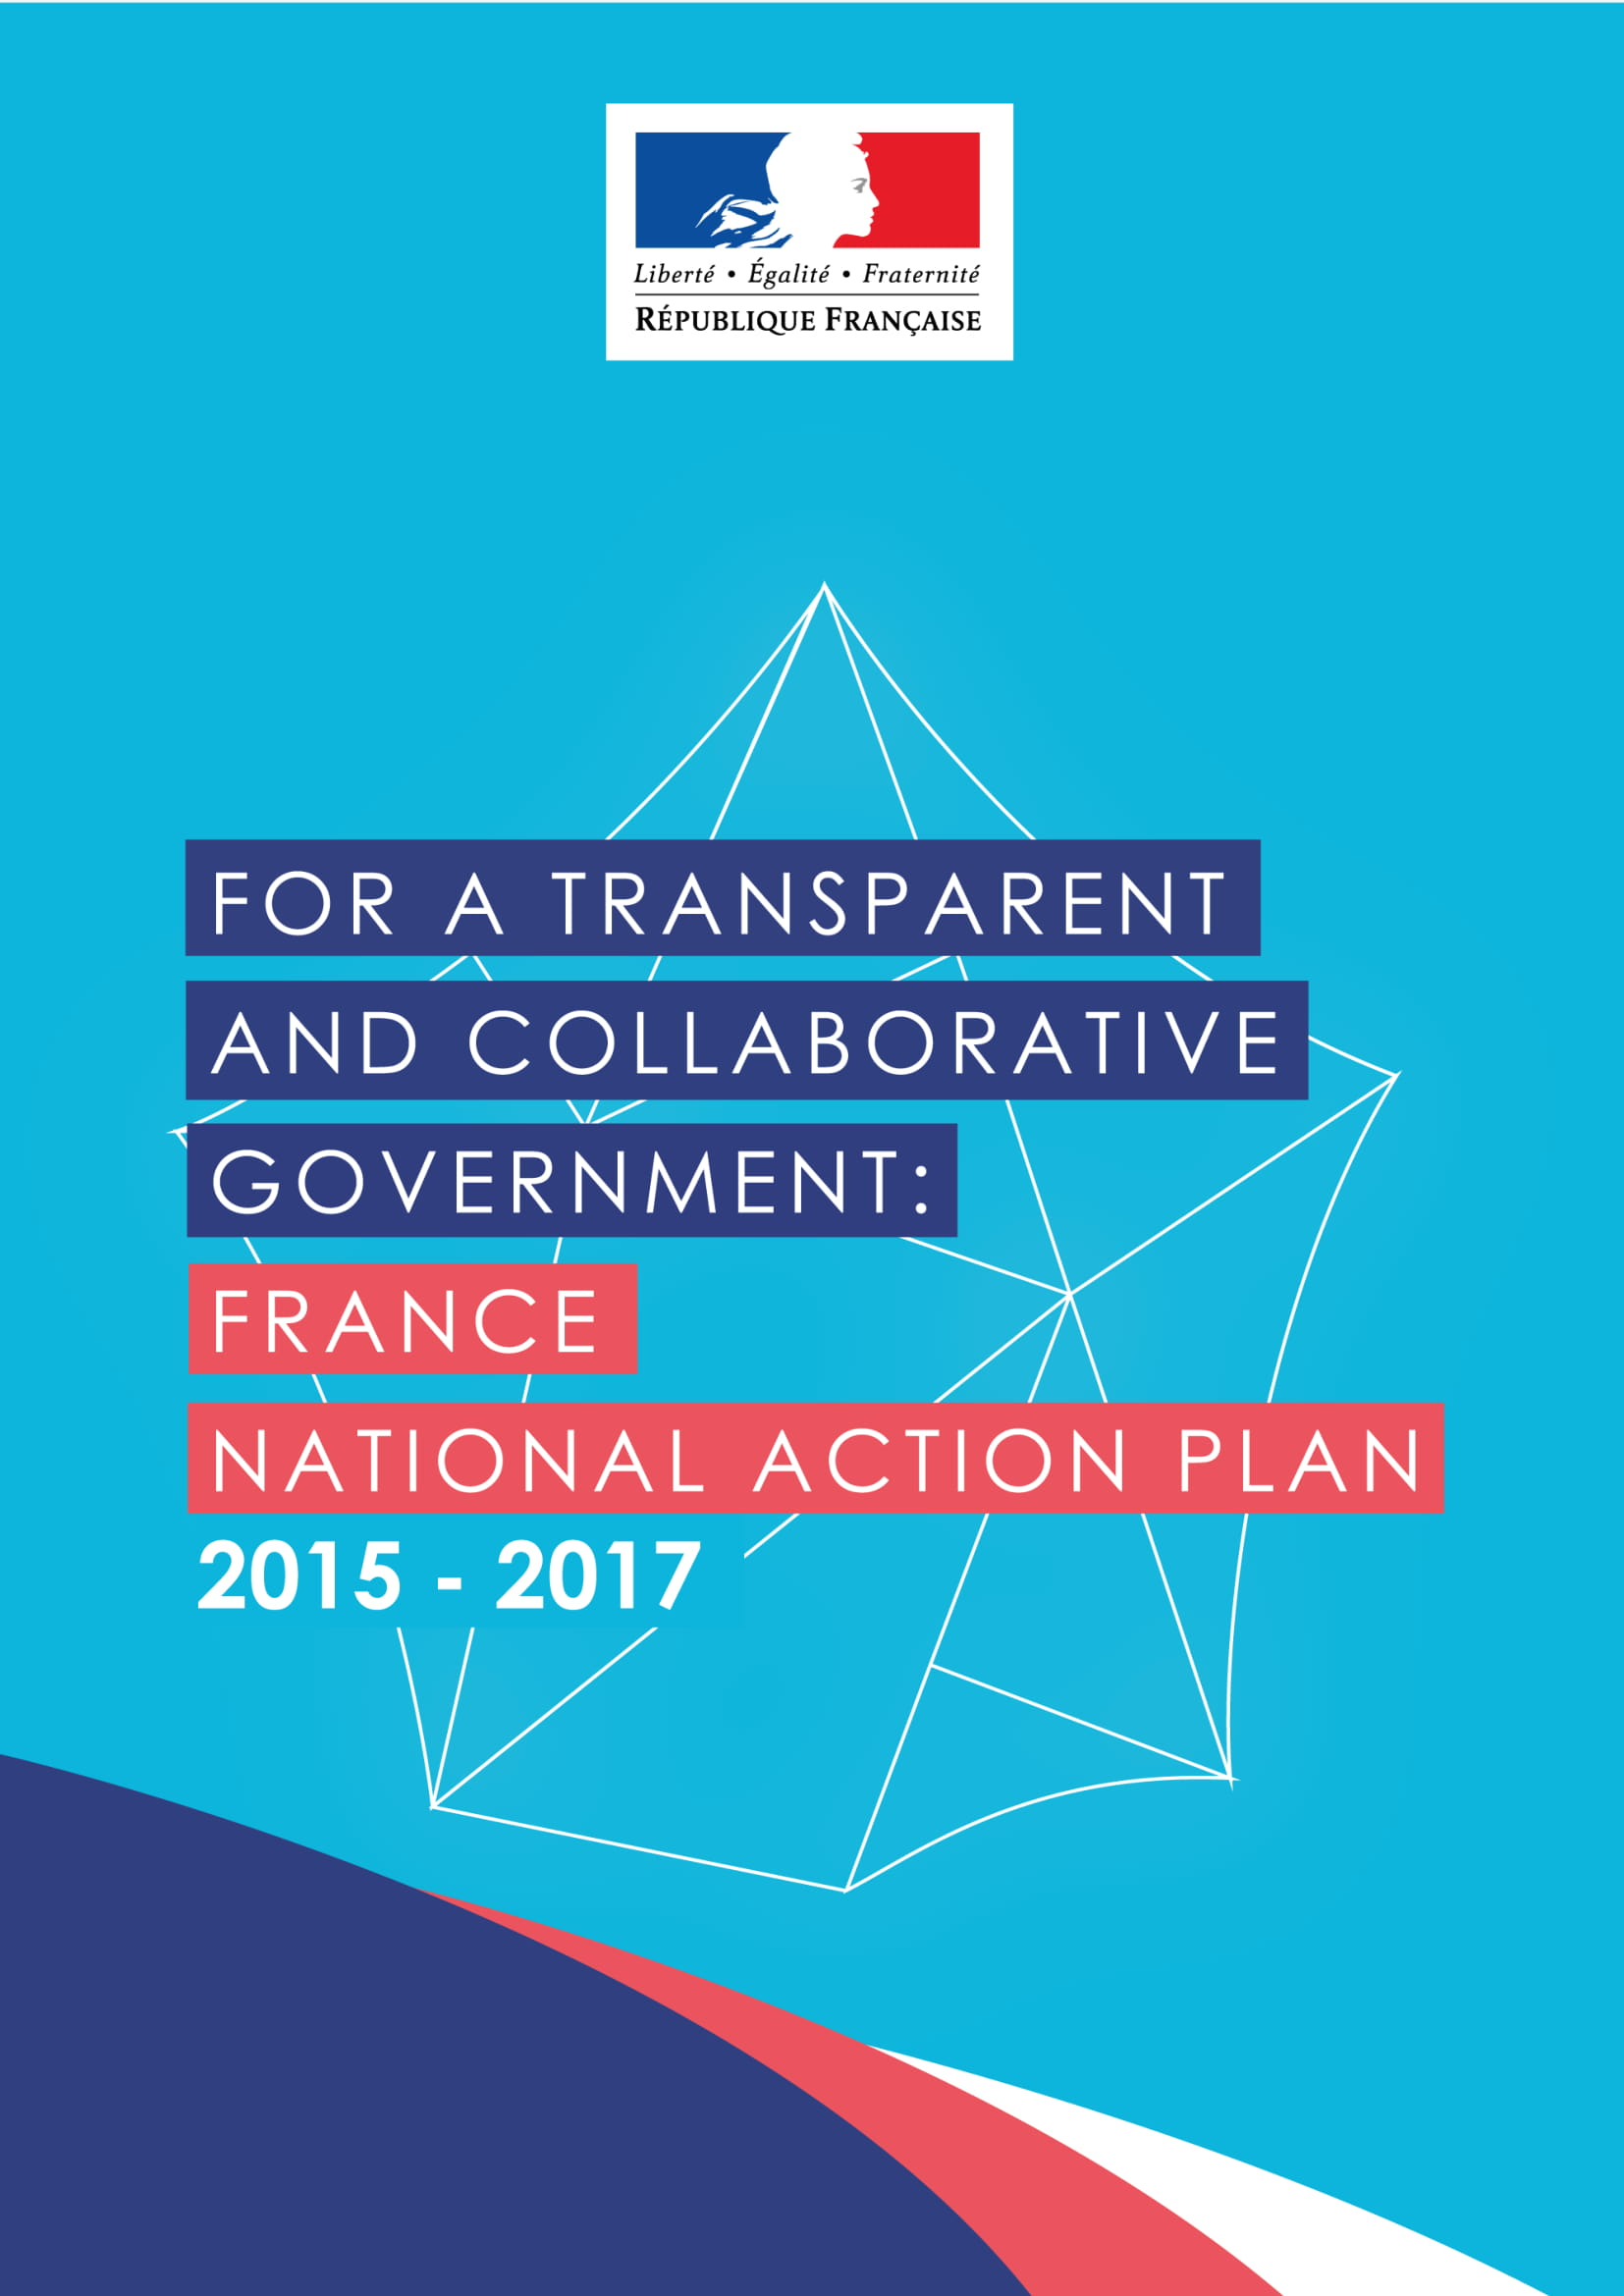 france national action plan example